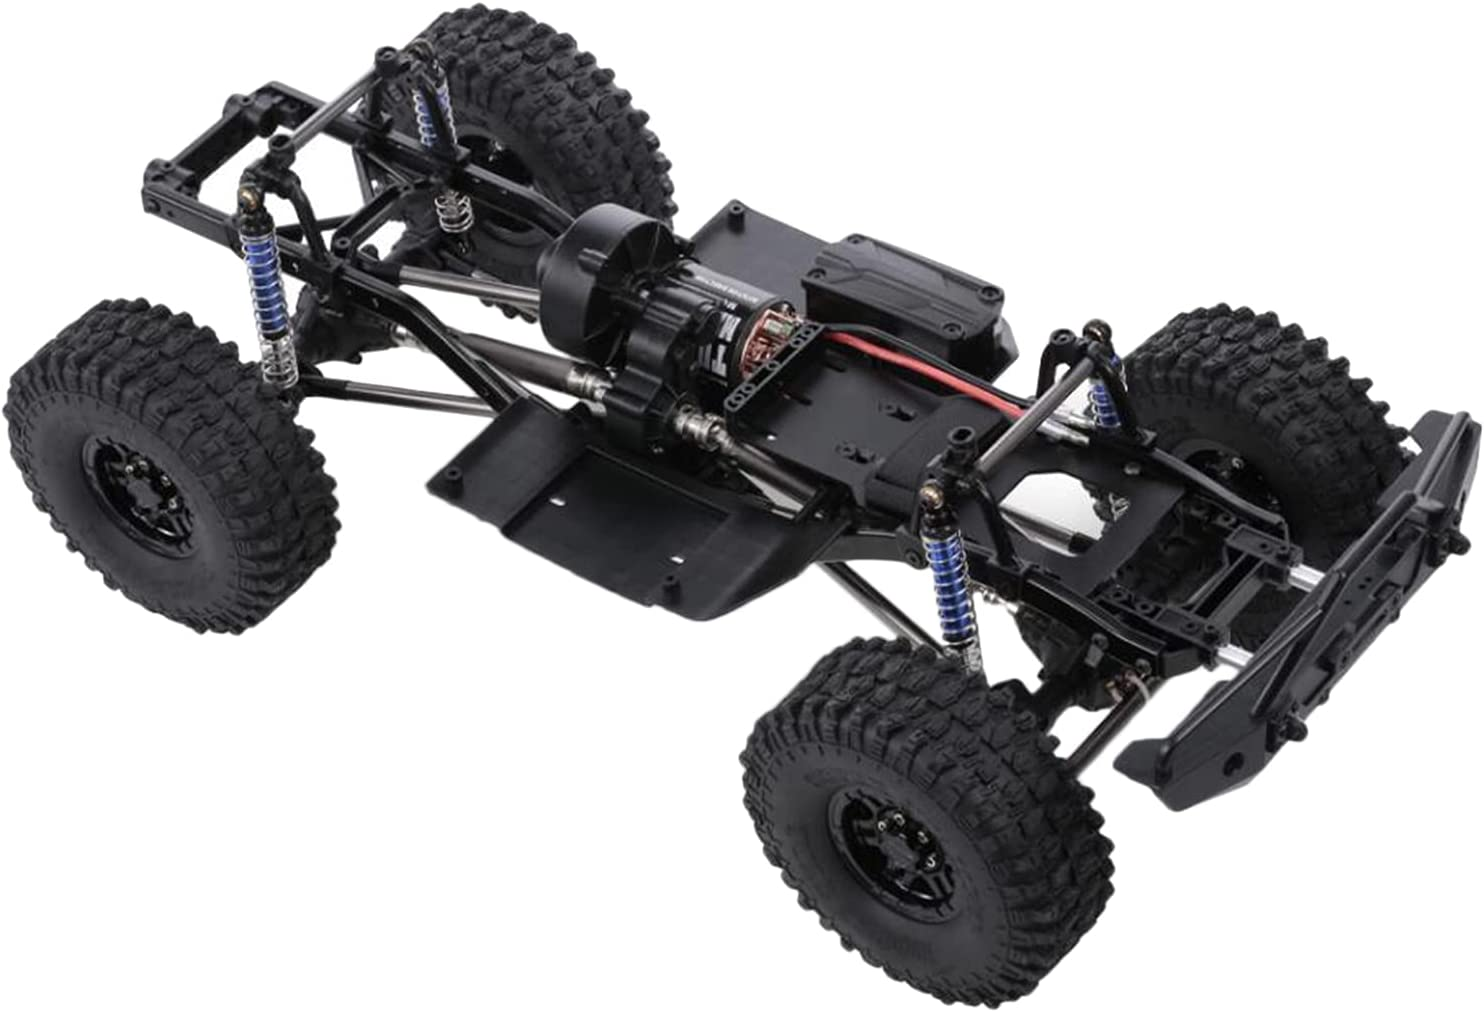 N\C Quality inspection Super popular specialty store RC Chassis Frame Kits Accessories Parts DIY Upgrade Truck